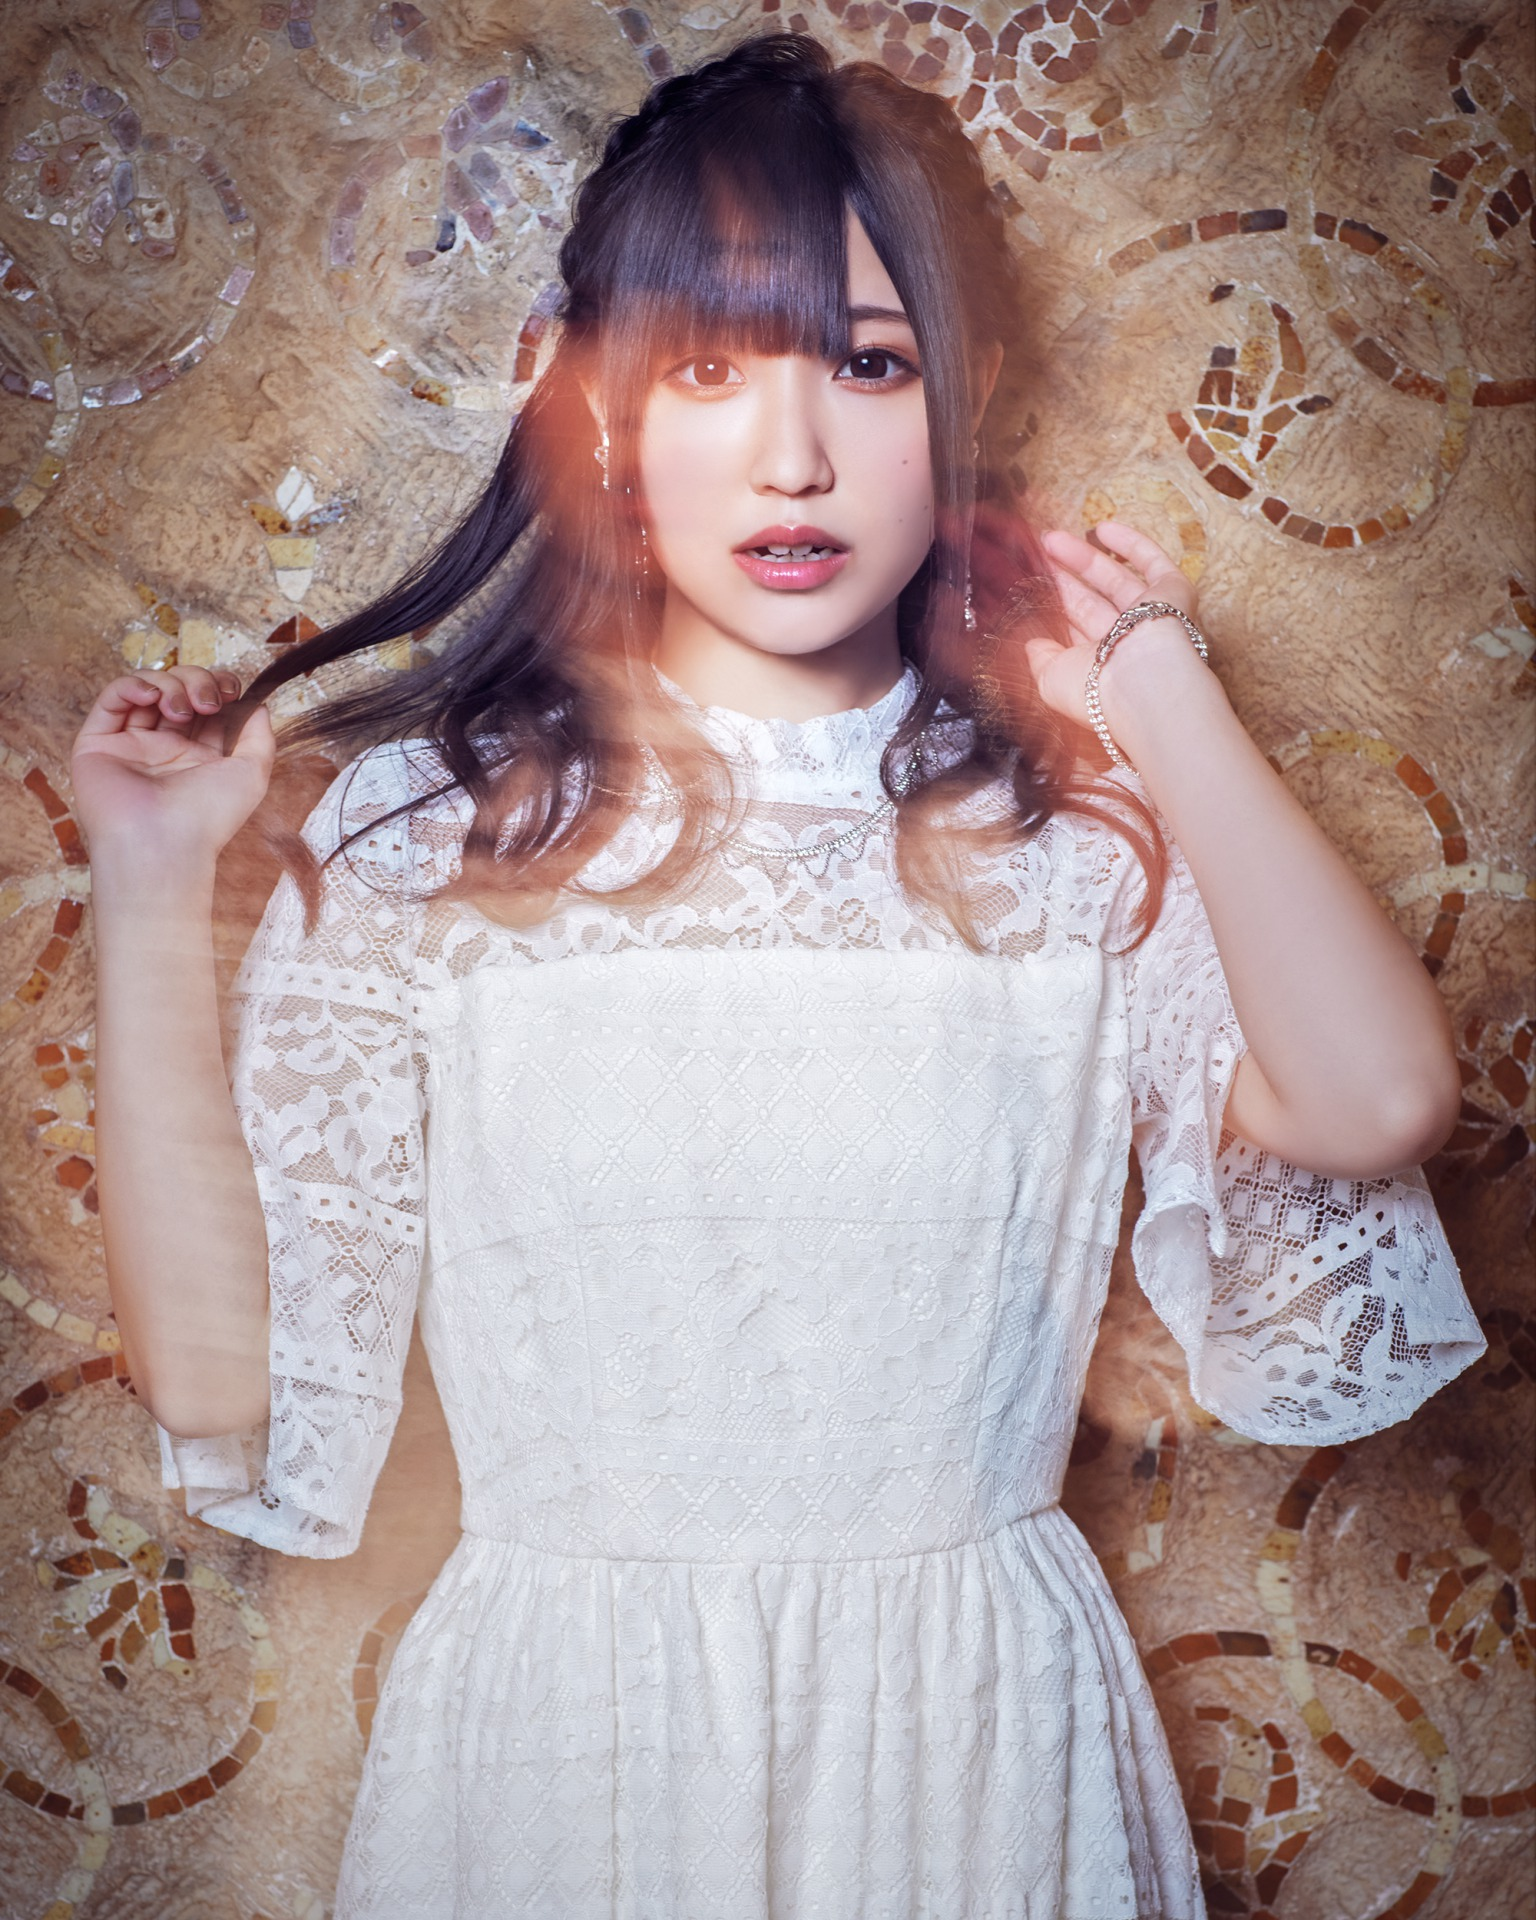 [Streaming+] Aina Suzuki 1st Live Tour ring A ring - Happy Nya's Day♪ - [Go To Event]